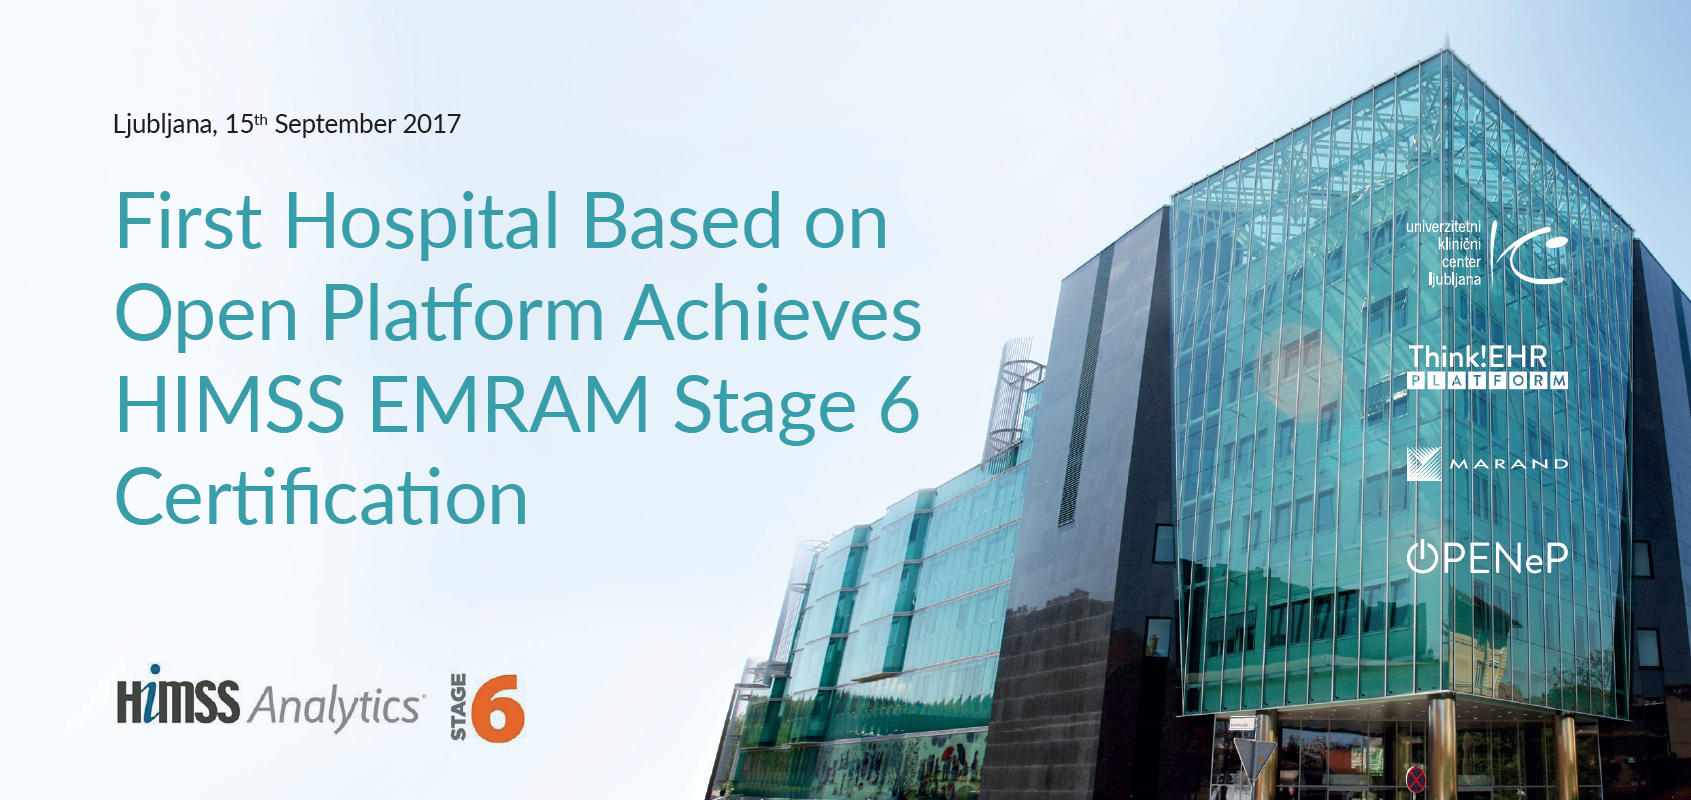 First Hospital Based on Open Platform Achieves HIMSS EMRAM Stage 6 Certification